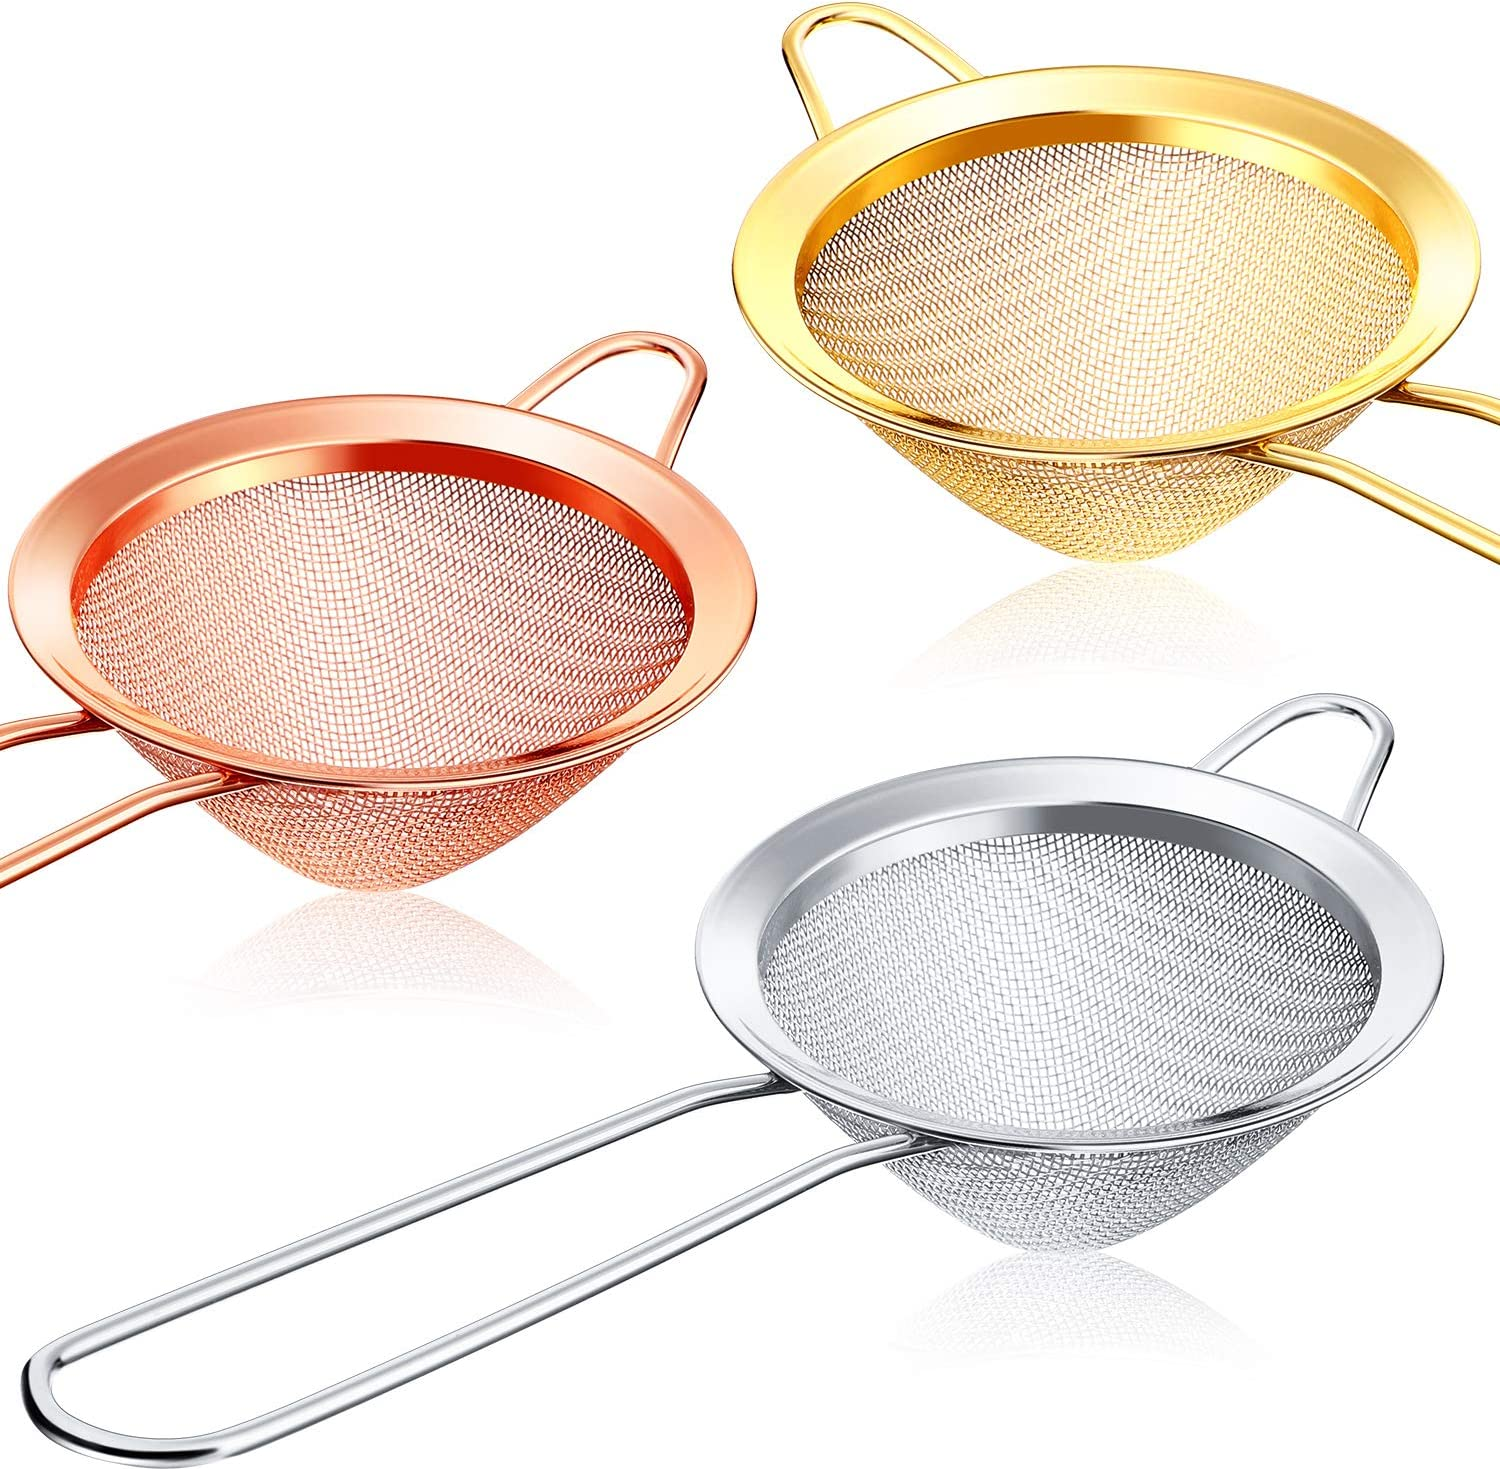 3 Pieces Cocktail Strainer Stainless Steel Tea Strainers Conical Food Strainers Fine Mesh Strainer Practical Bar Strainer Tool (3.3 Inches, Silver, Gold, Rose Gold)